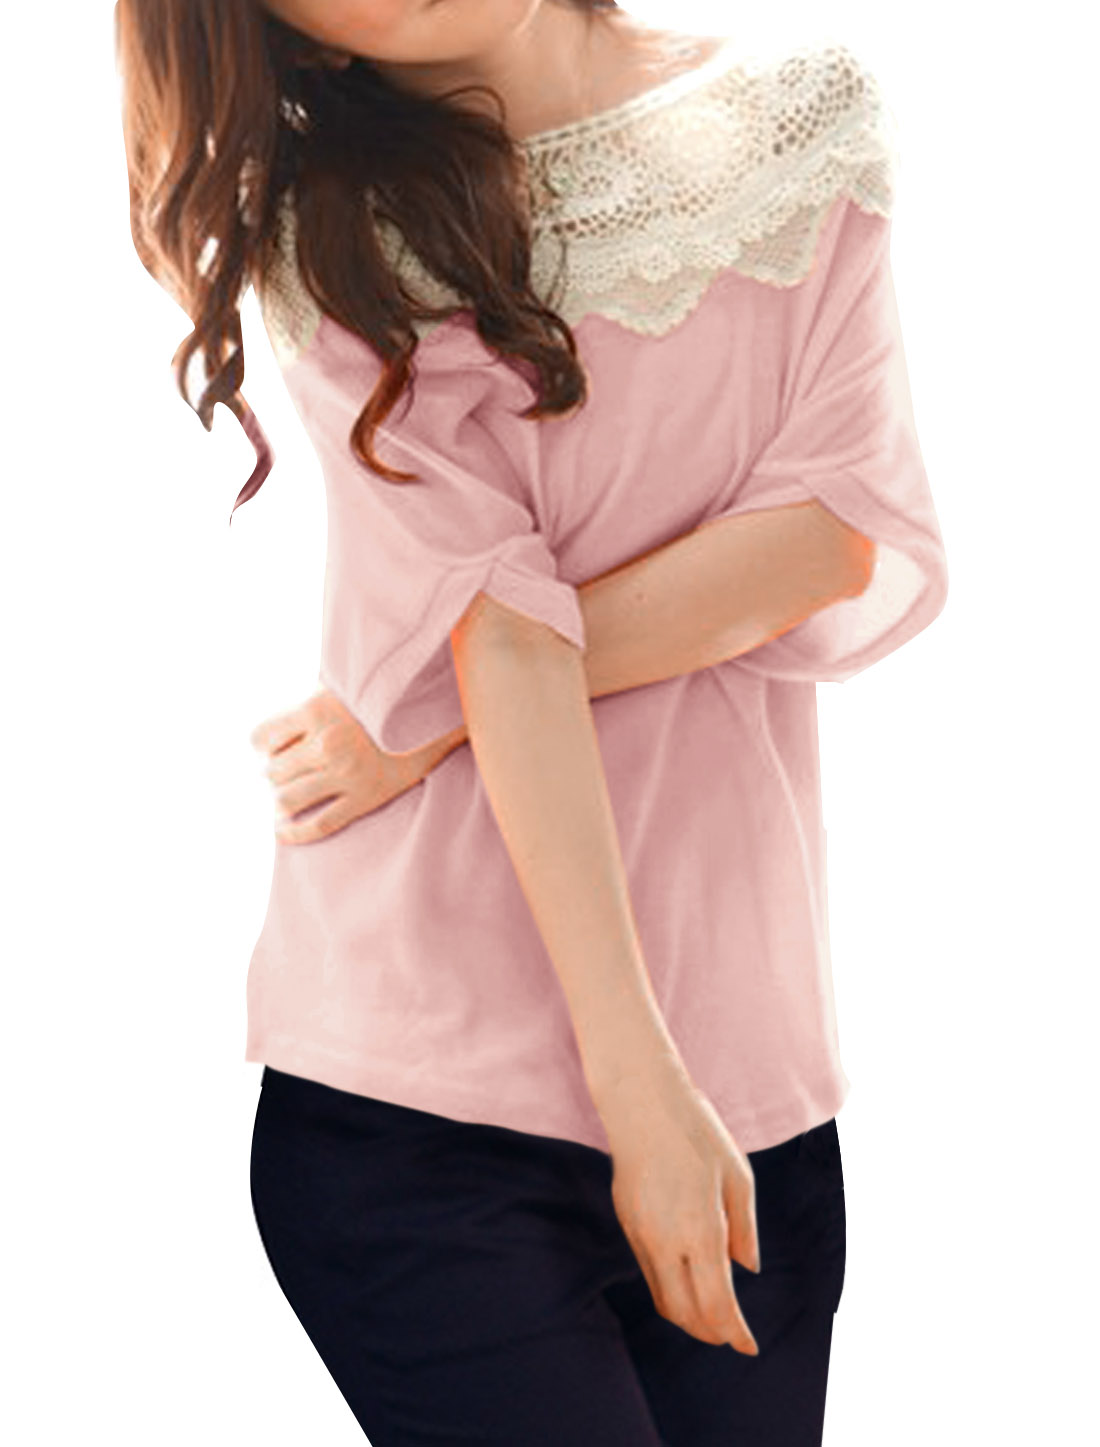 Pullover Crochet Lace Hem Design Pink Tunic Top Shirt for Lady L